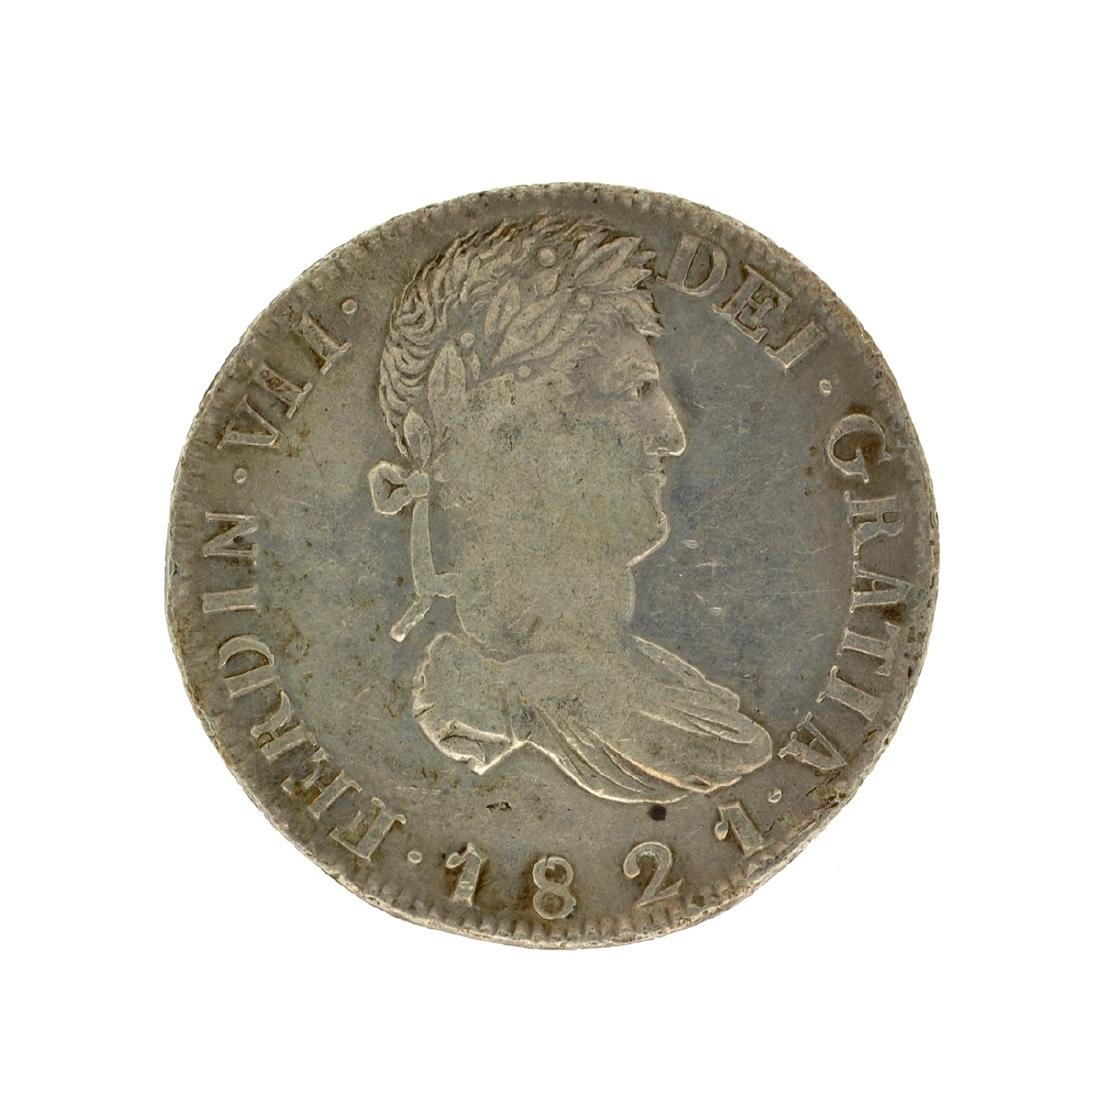 1821 Extremely Rare Eight Reales American First Silver